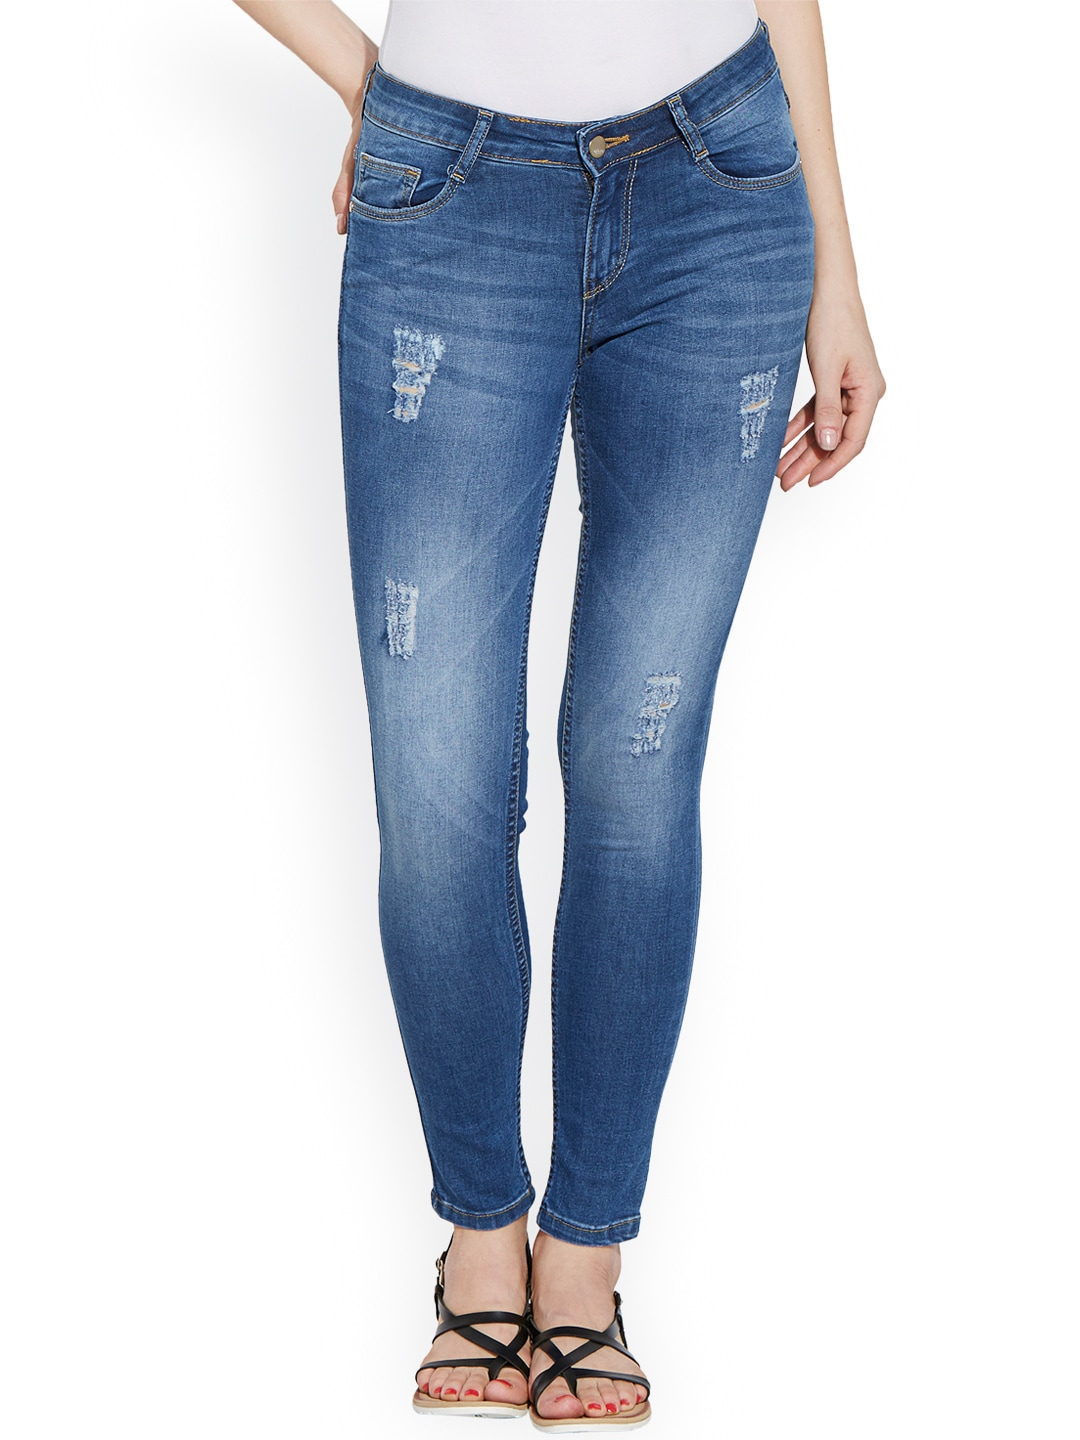 Kraus Jeans Women Blue Skinny Fit Mid-Rise Jeans image